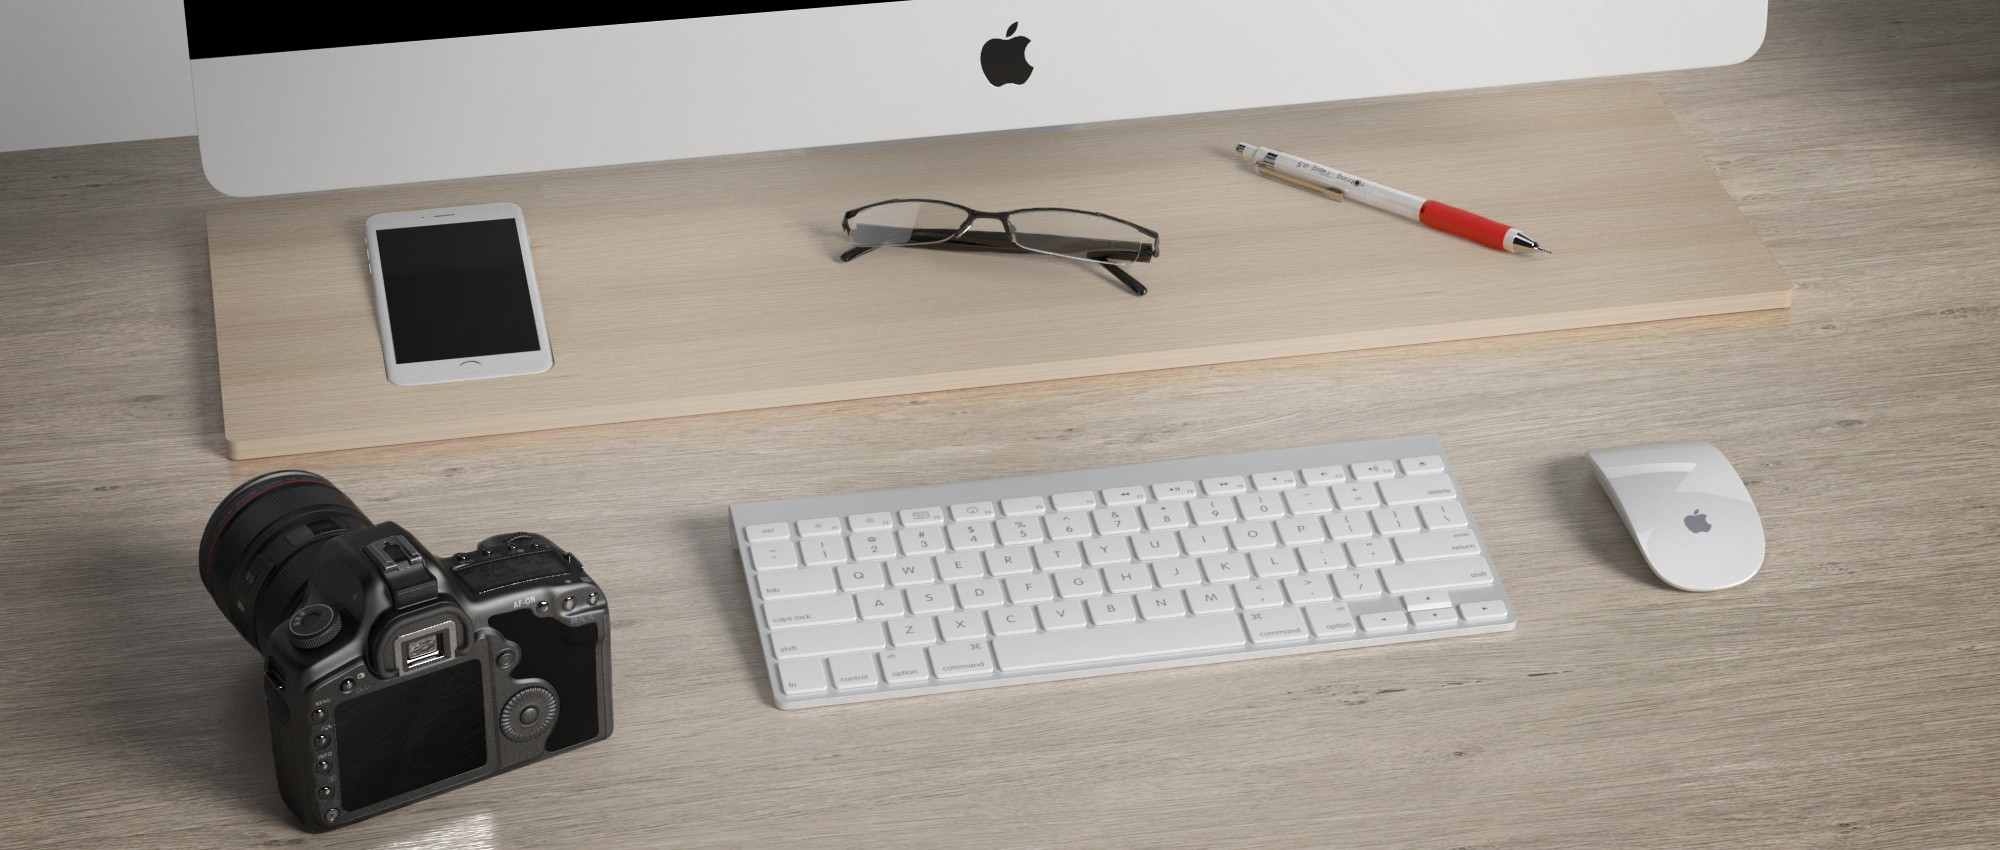 Tamm iPhone 6 Plus Dock & Apple iMac Desk Organizer